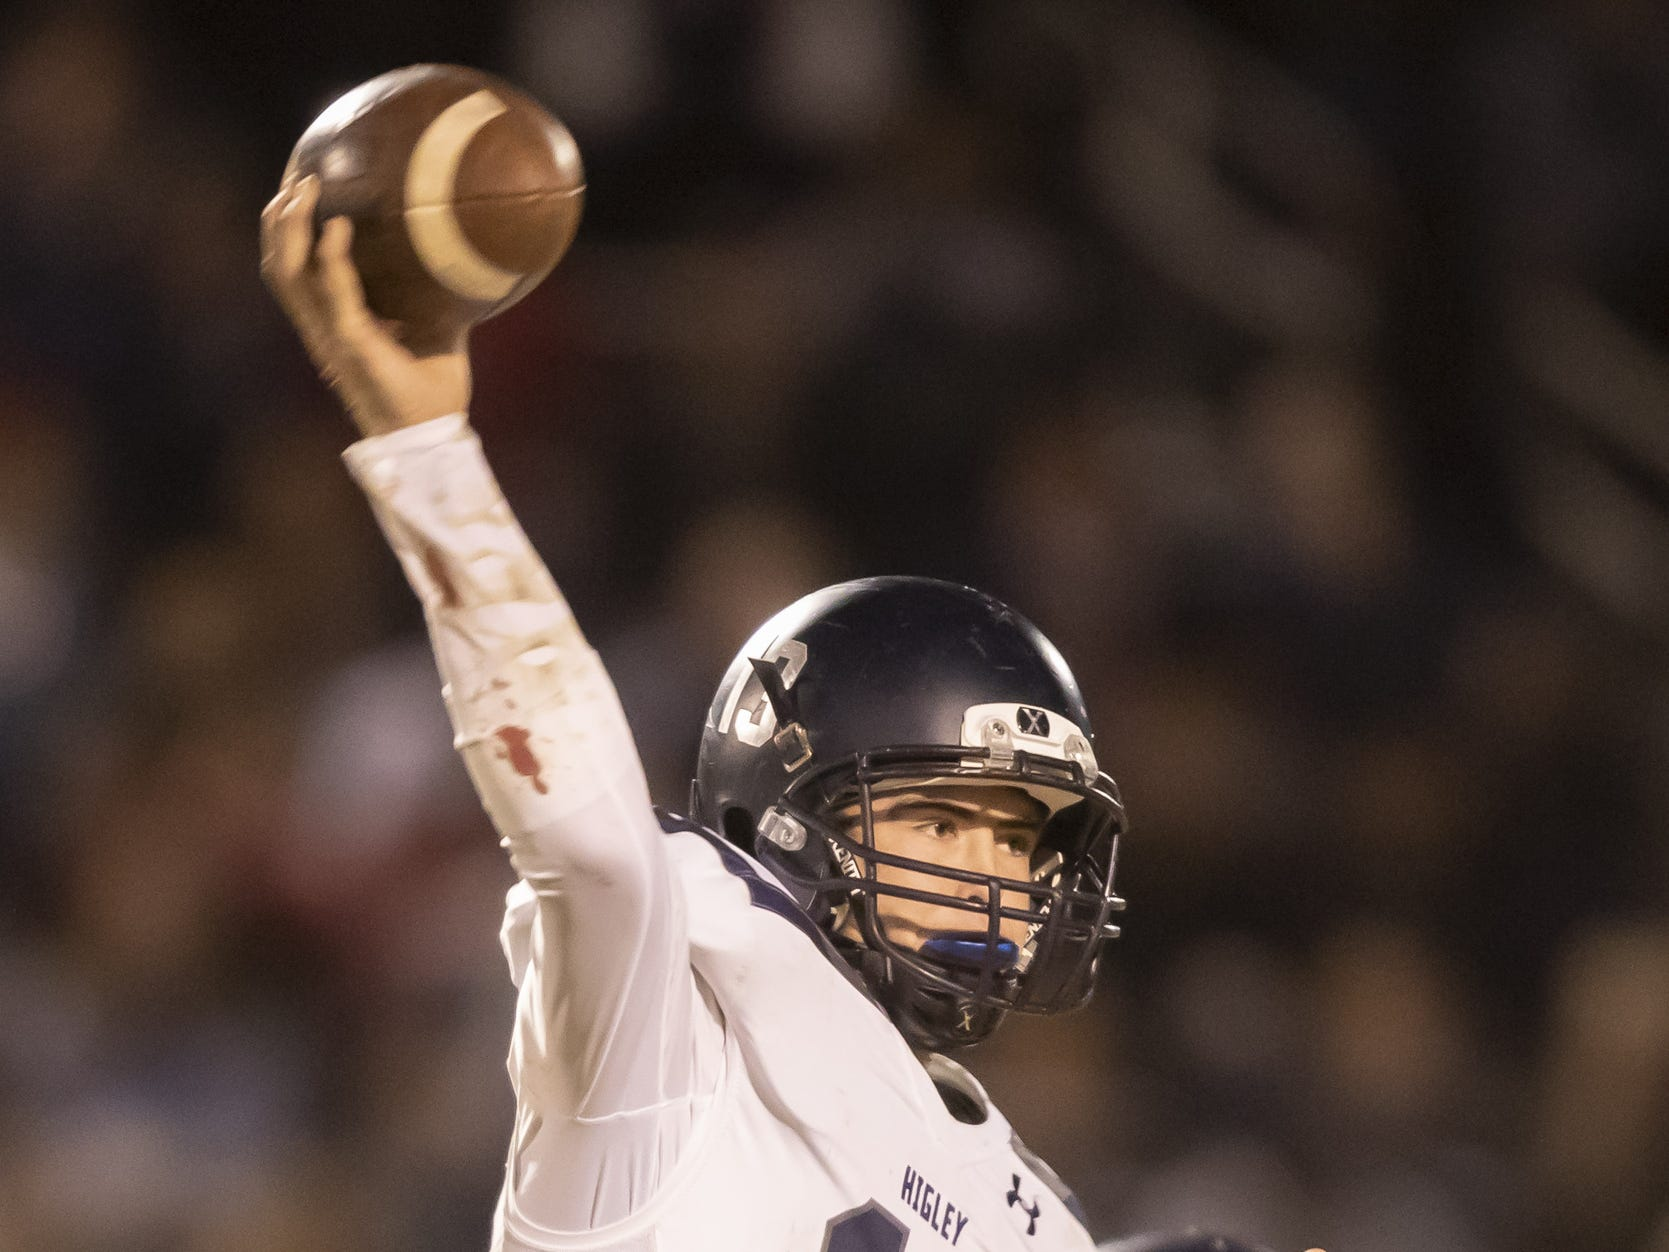 Senior quarterback Spencer Brasch (13) of the Higley Knights throws a pass against the Centennial Coyotes in the playoffs at Willow Canyon High School on Friday, November 16, 2018 in Surprise, Arizona. #azhsfb